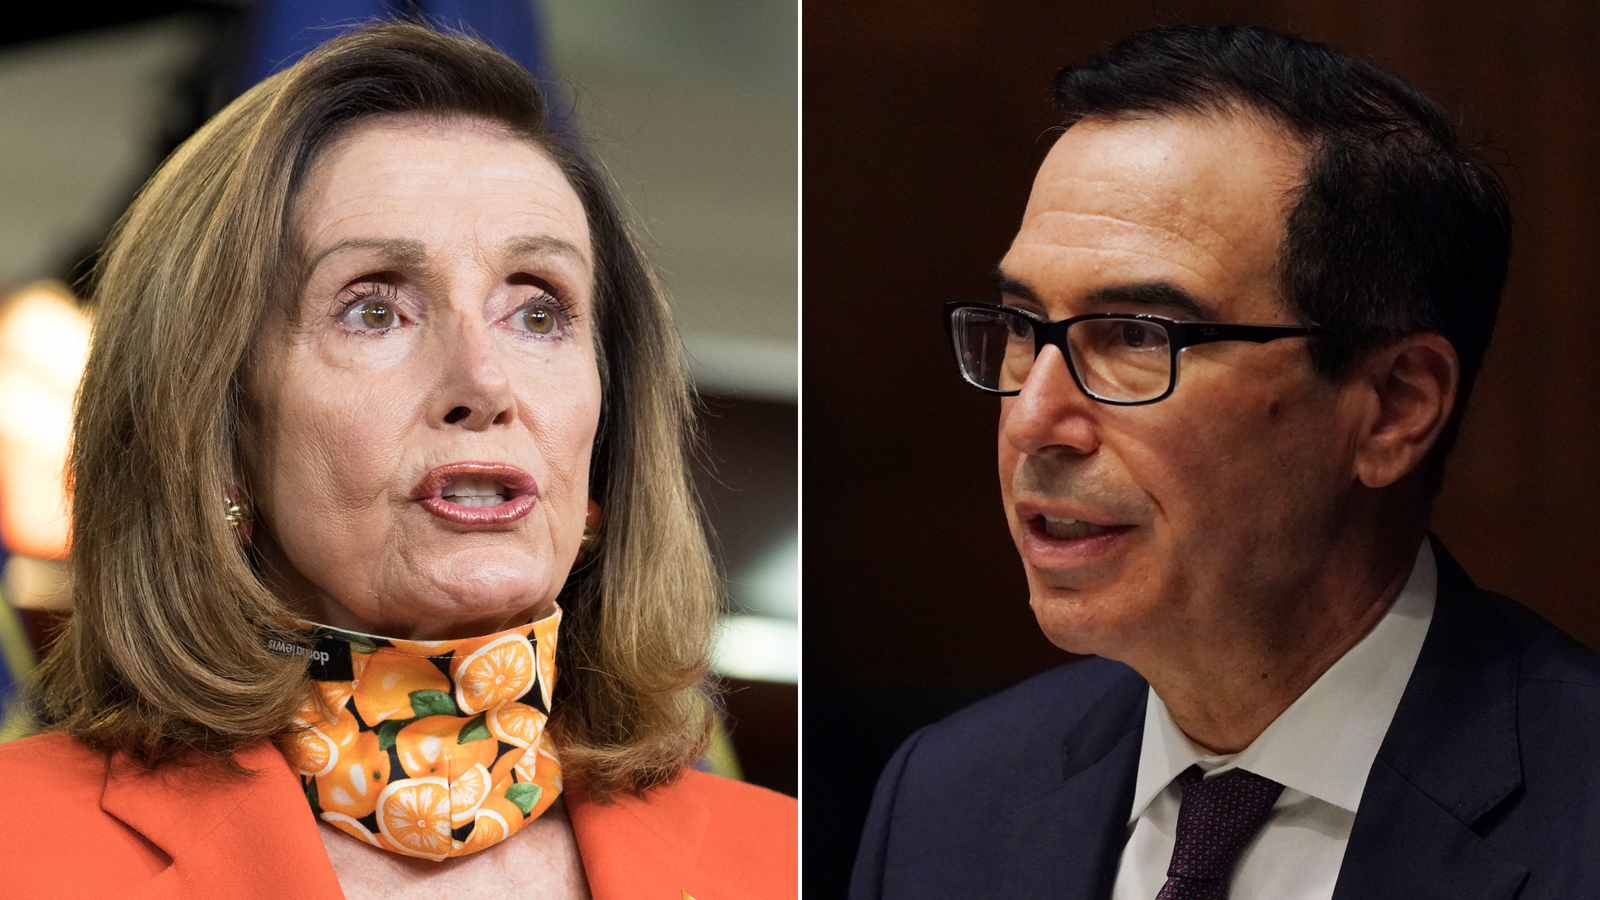 Stimulus negotiations latest: Hopes for a deal seem dim